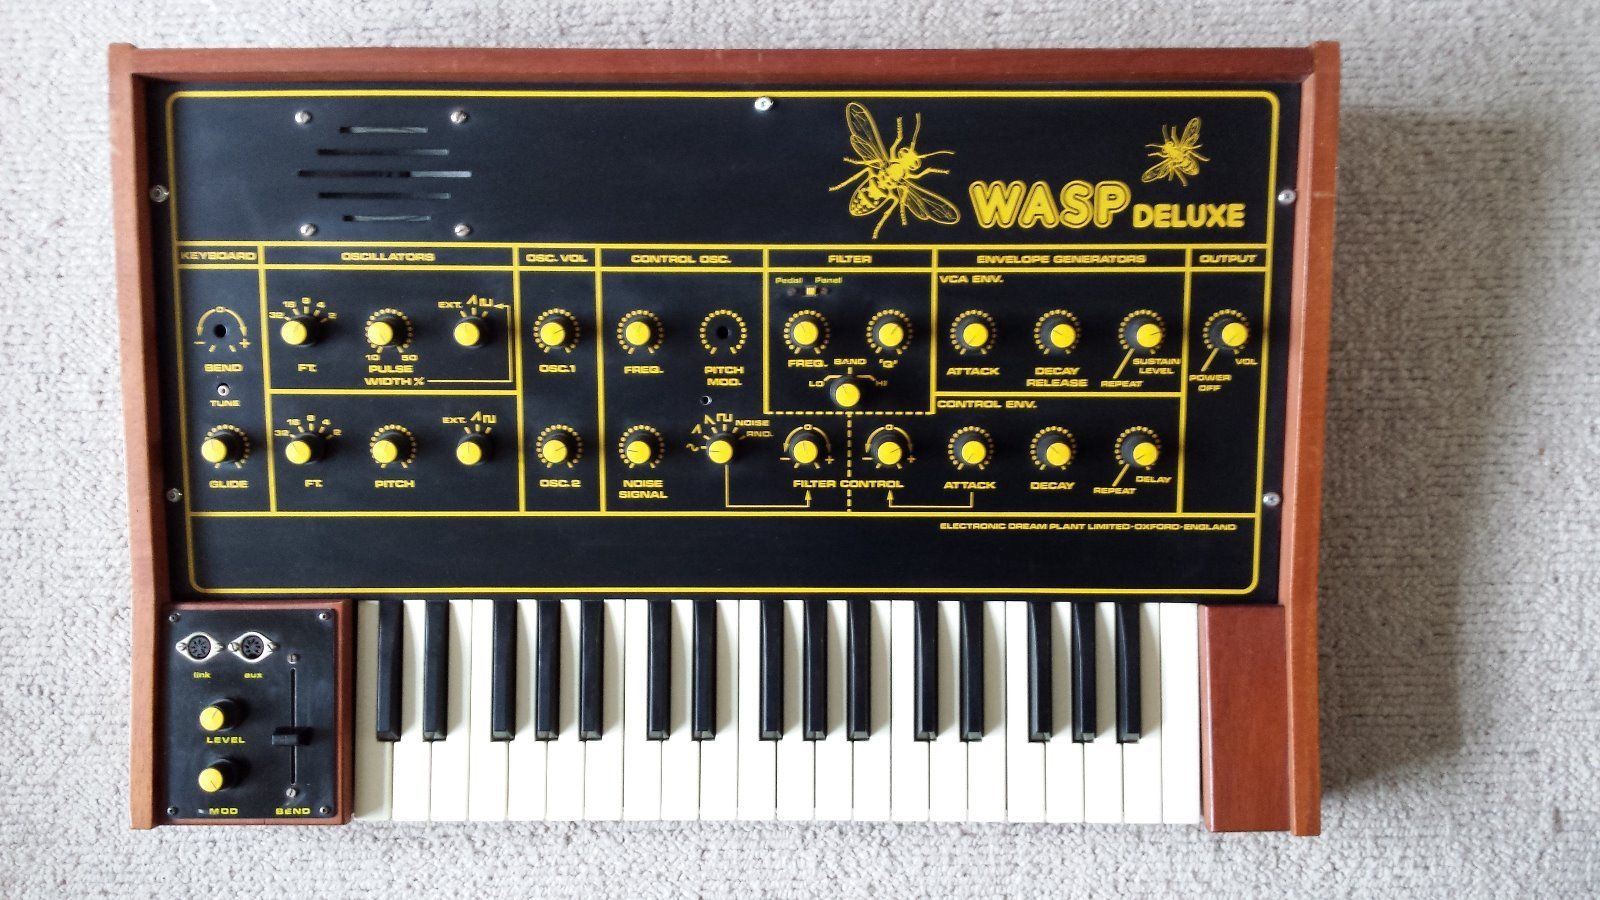 58d442341daec_Electronic-Dream-Plant-WASP-Deluxe(1).jpg.4c64a80e383ee64ac80aeca45d63652a